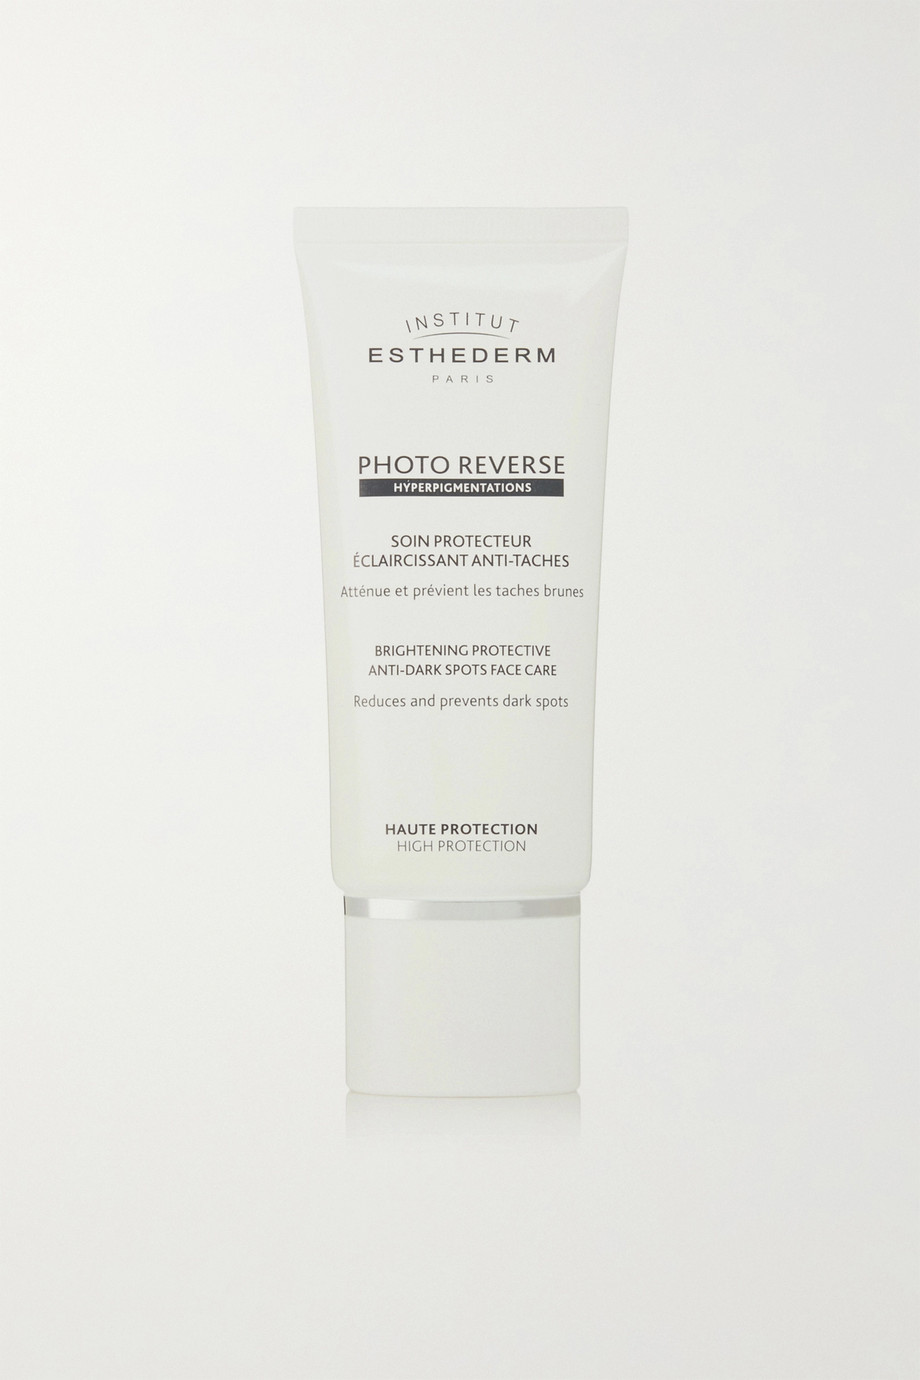 Institut Esthederm Photo Reverse Brightening Protective Anti-Dark Spots Face Care, 50 ml – Gesichtscreme